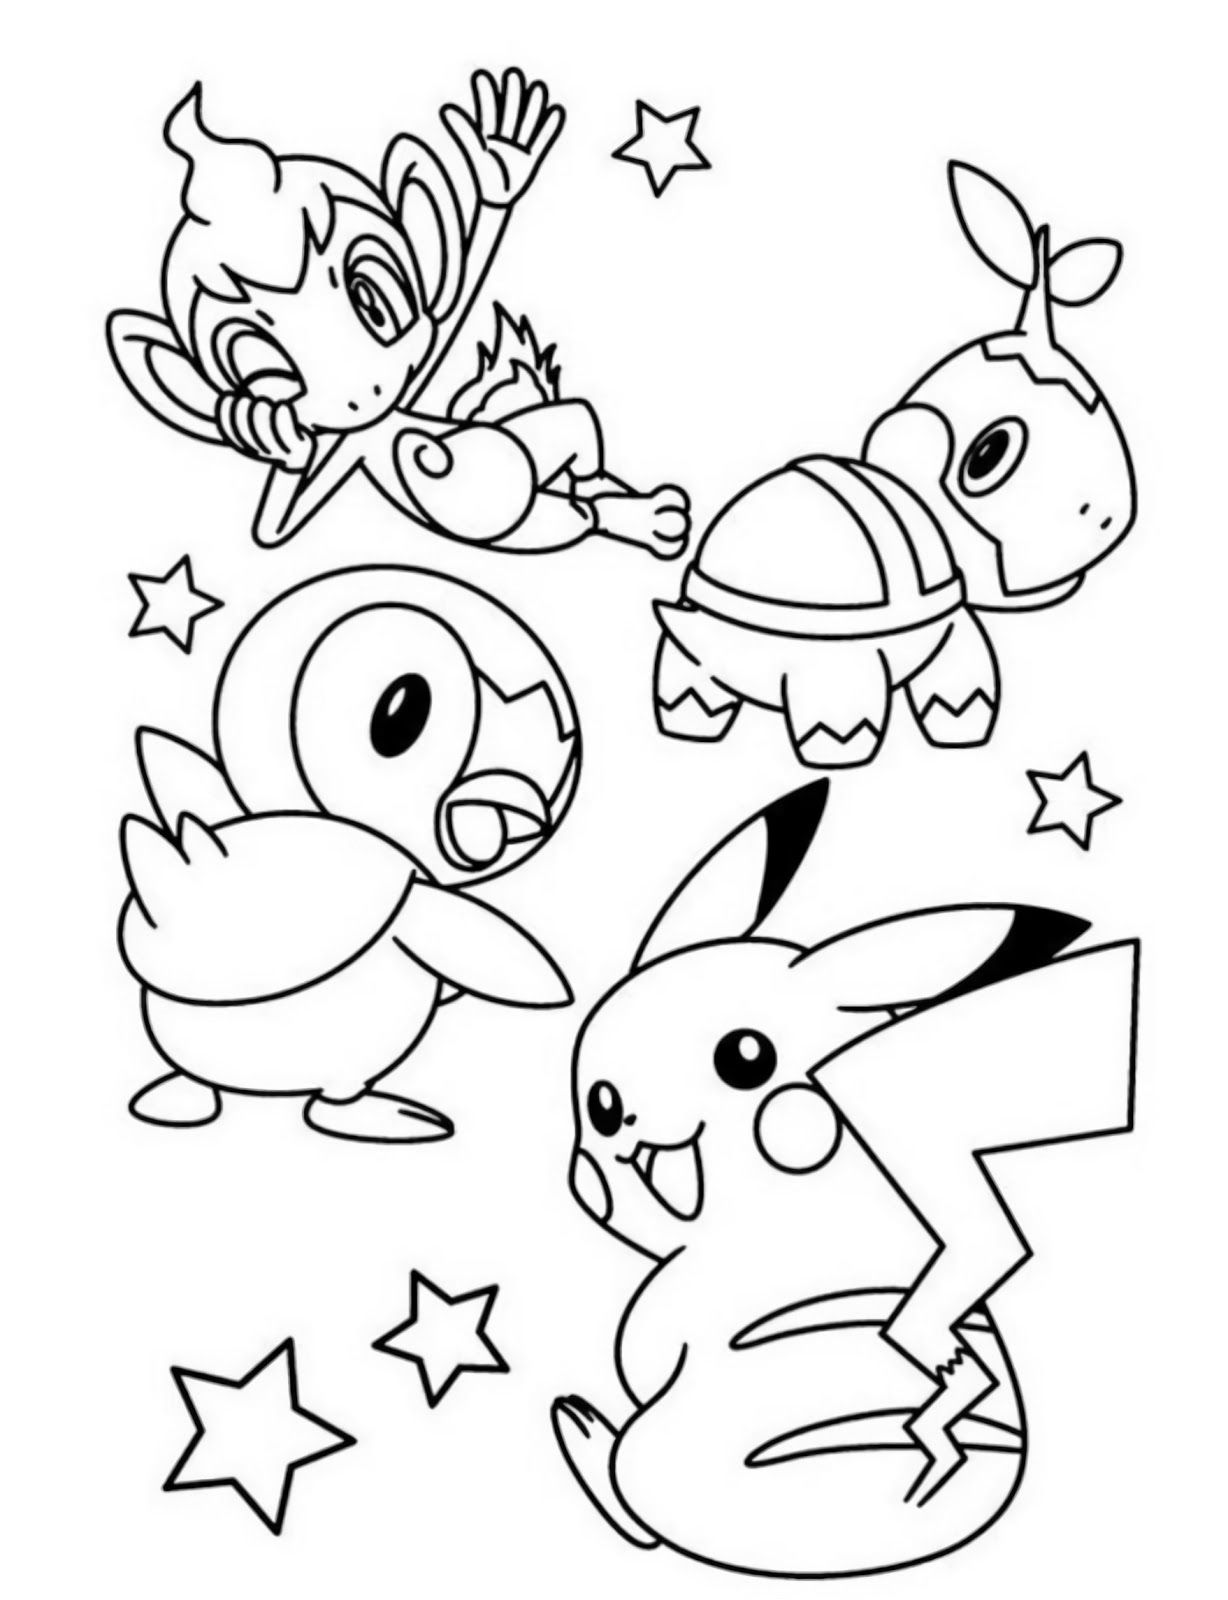 Starter Pokemon Turtwig Chimchar Piplup And Pikachu Coloring Pages Pikachu Coloring Page Pokemon Coloring Sheets Pokemon Coloring Pages